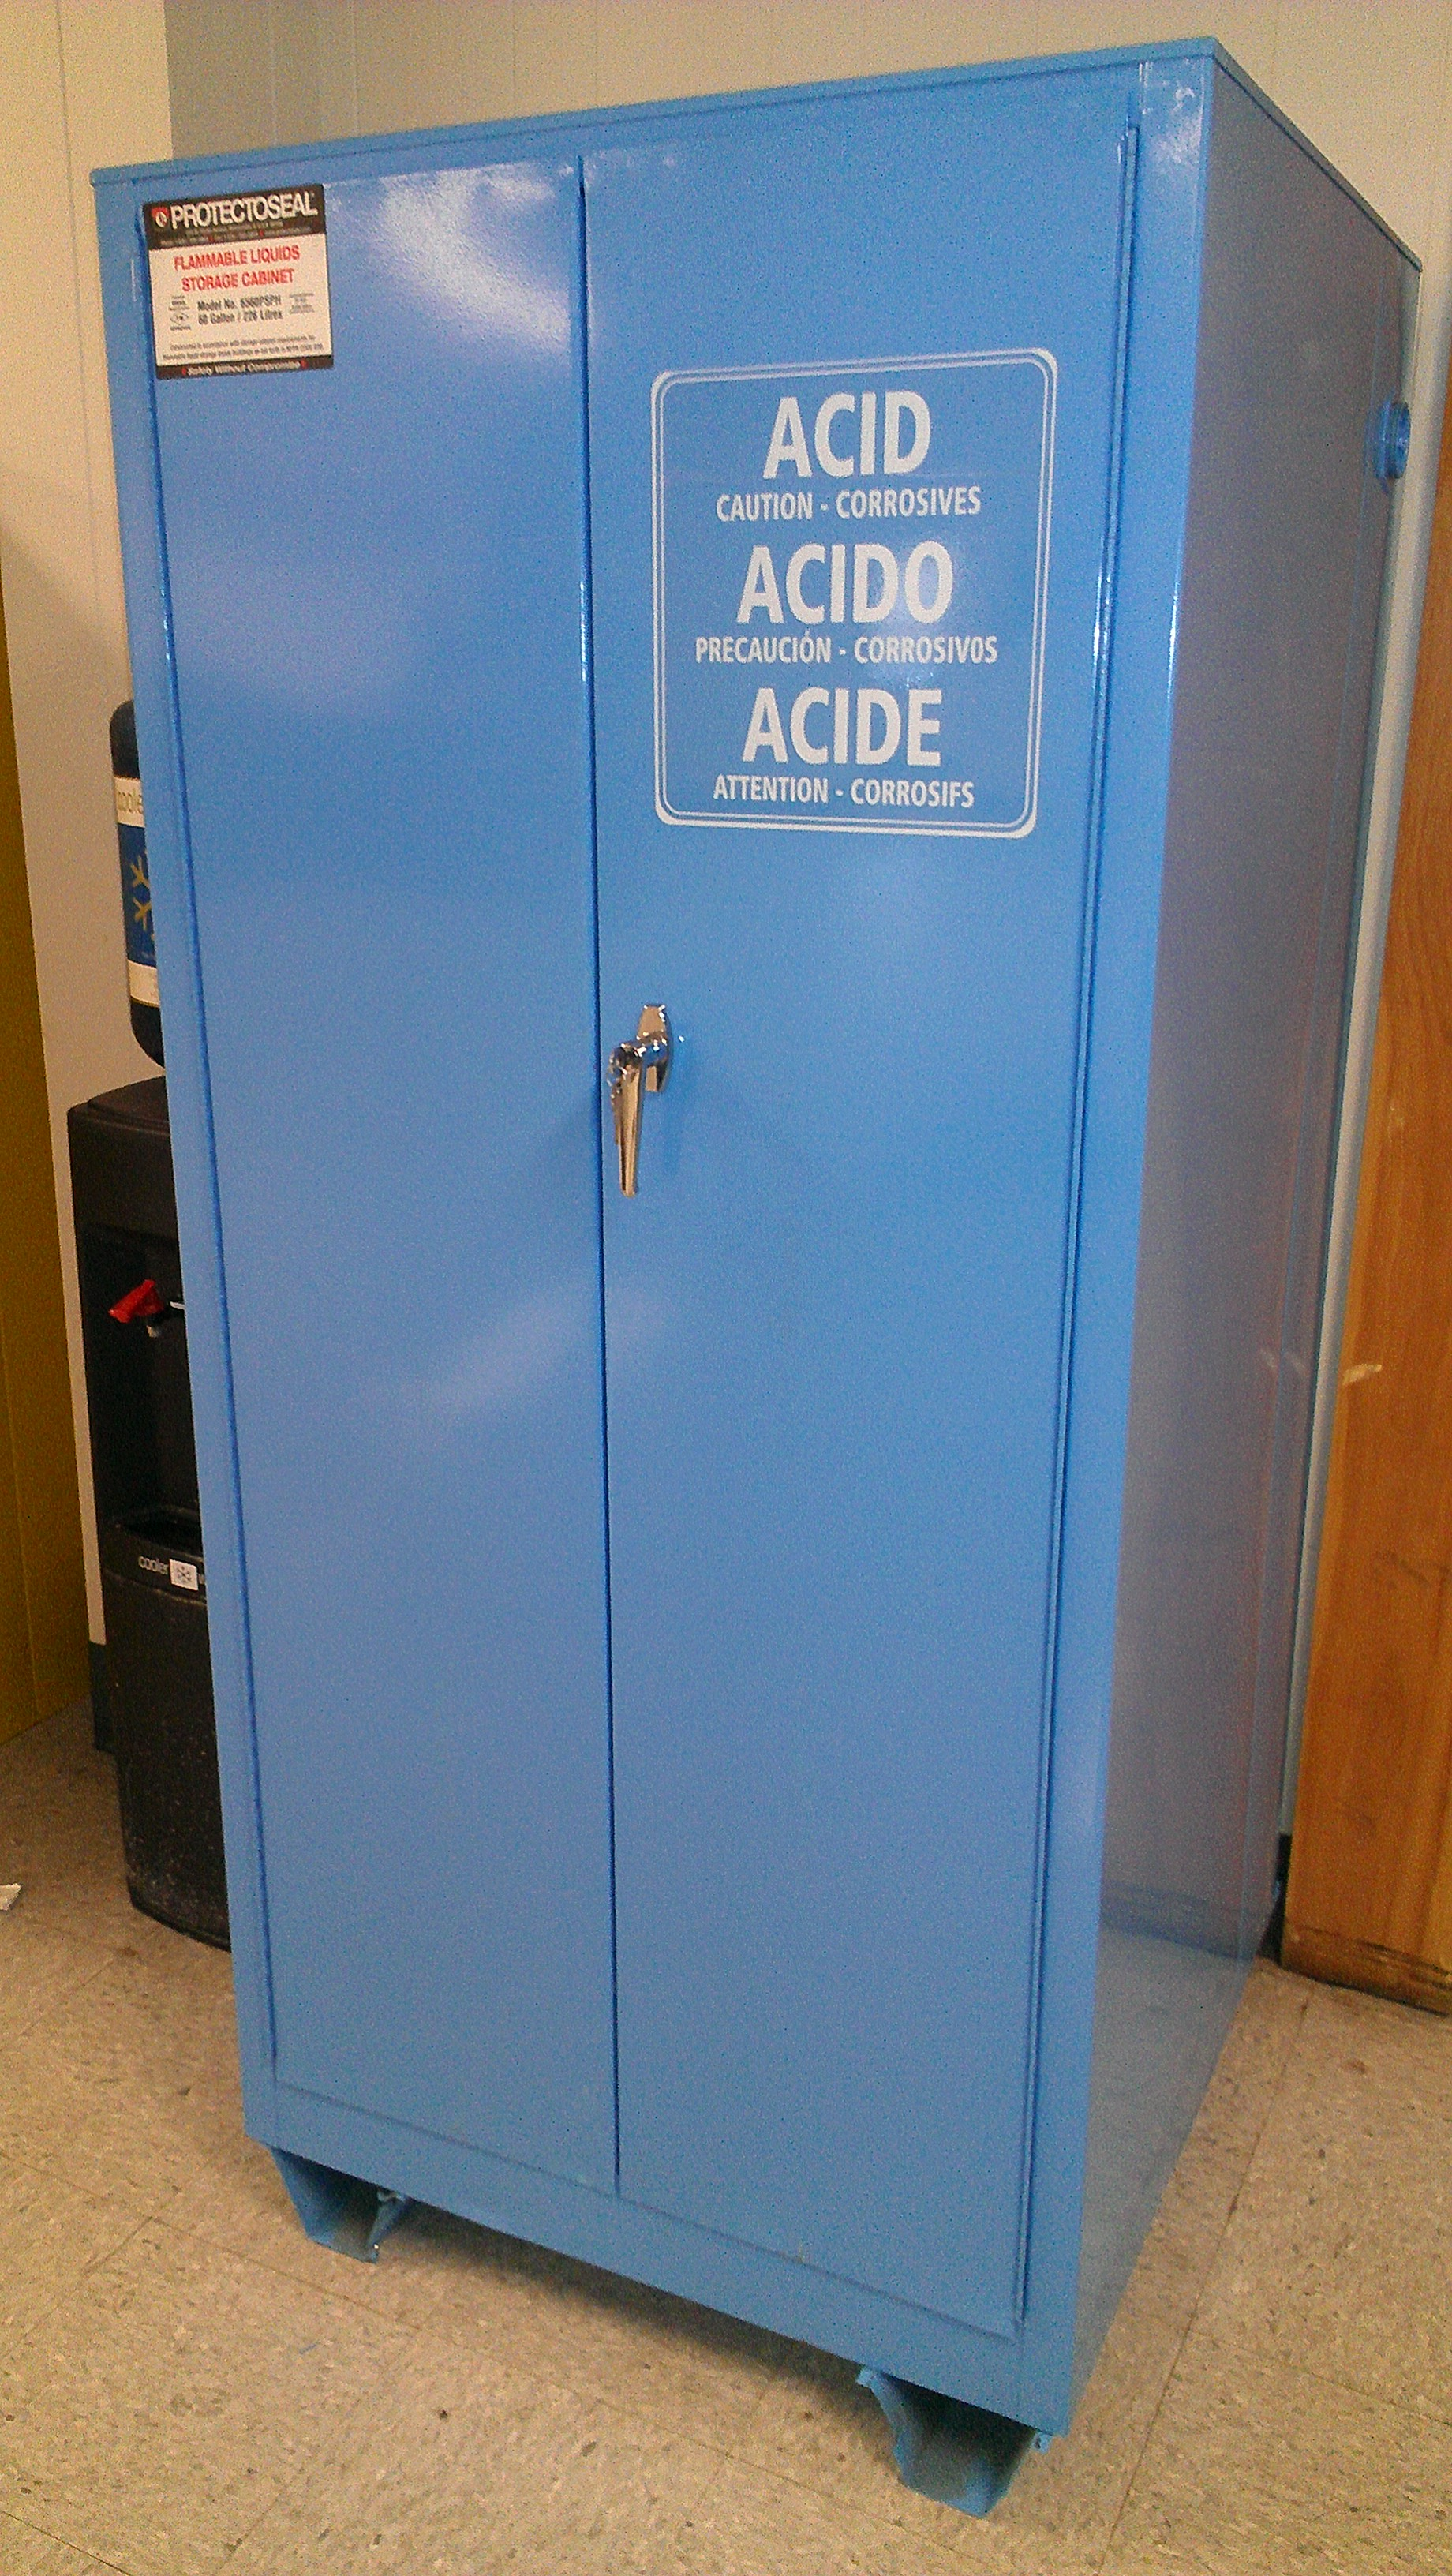 New u0026 Used Liquid Flammable Fire Safety Cabinets